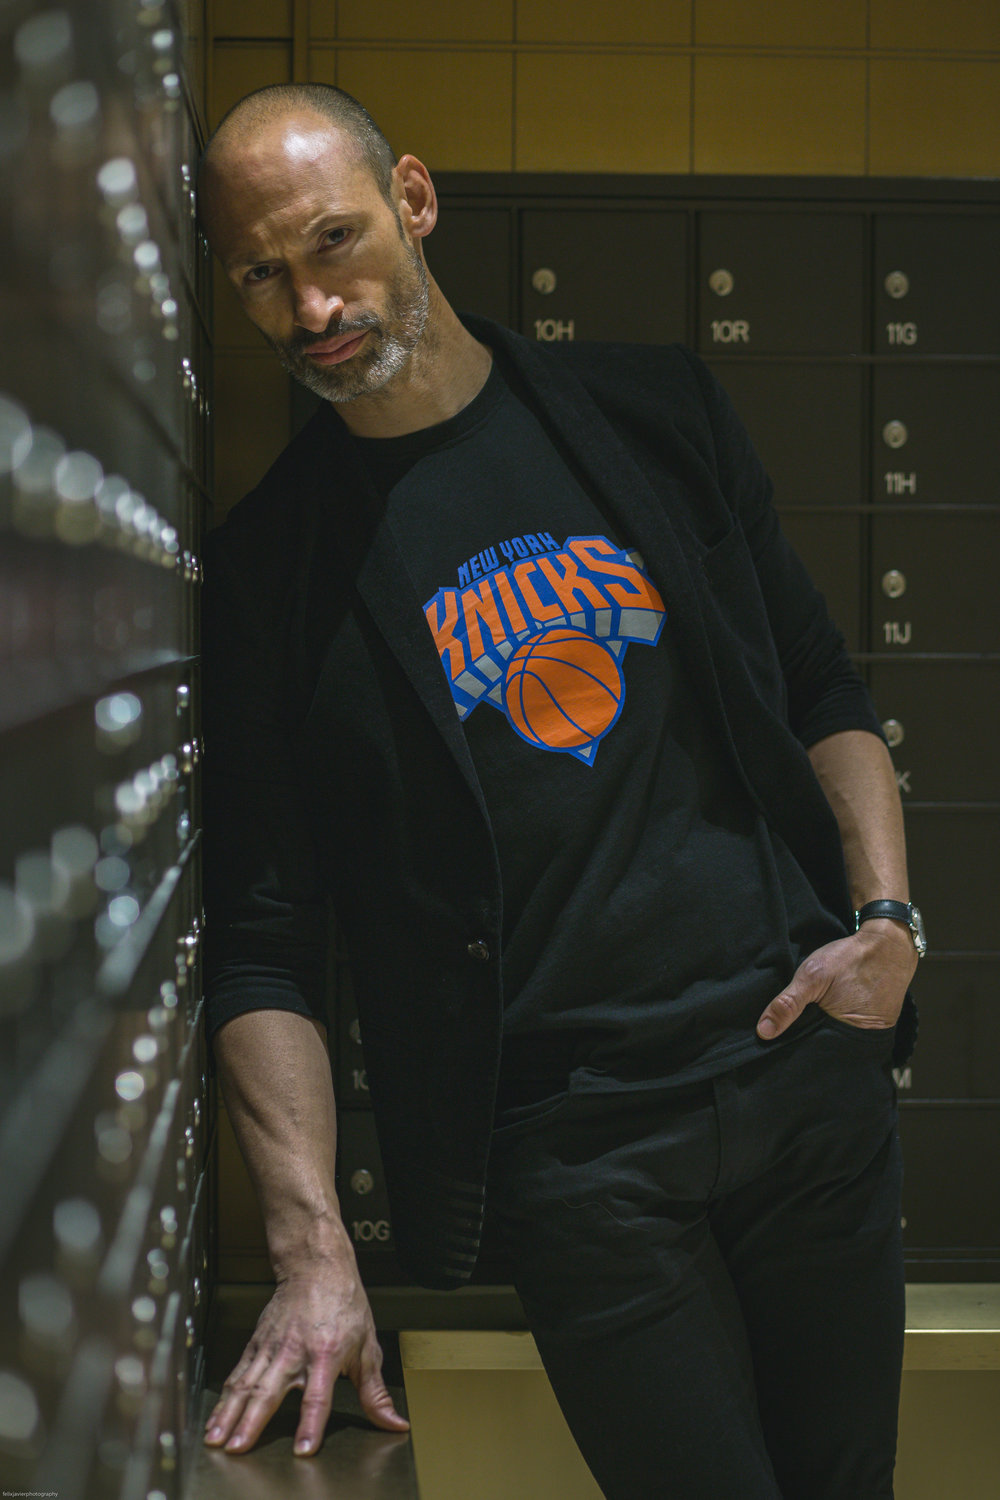 Grungy Gentleman x New York Knicks 11.jpg